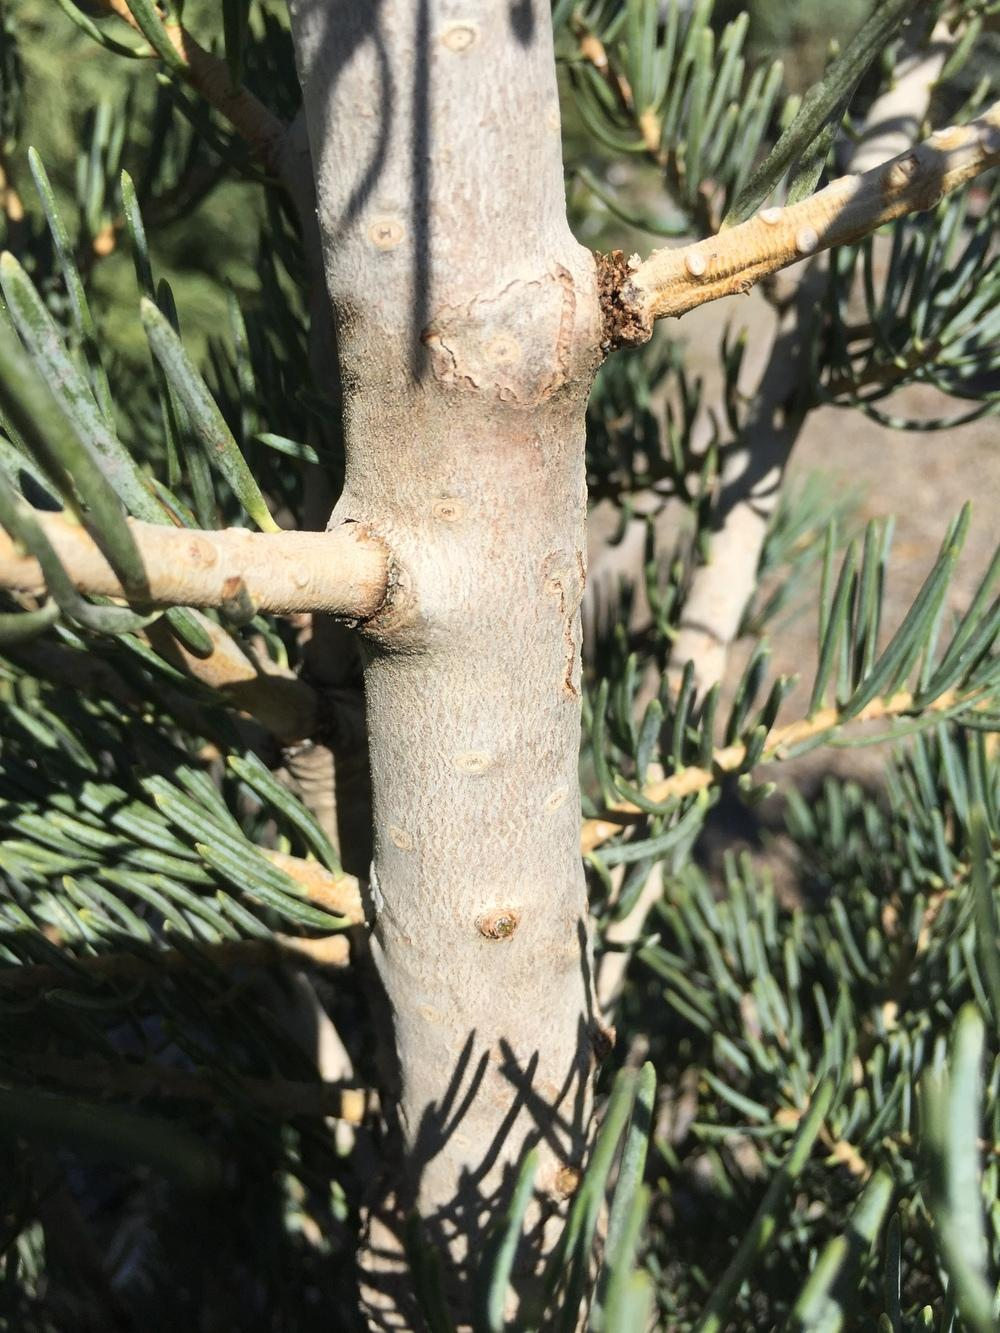 Photo Of The Stem Scape Stalk Or Bark Of Abies Concolor